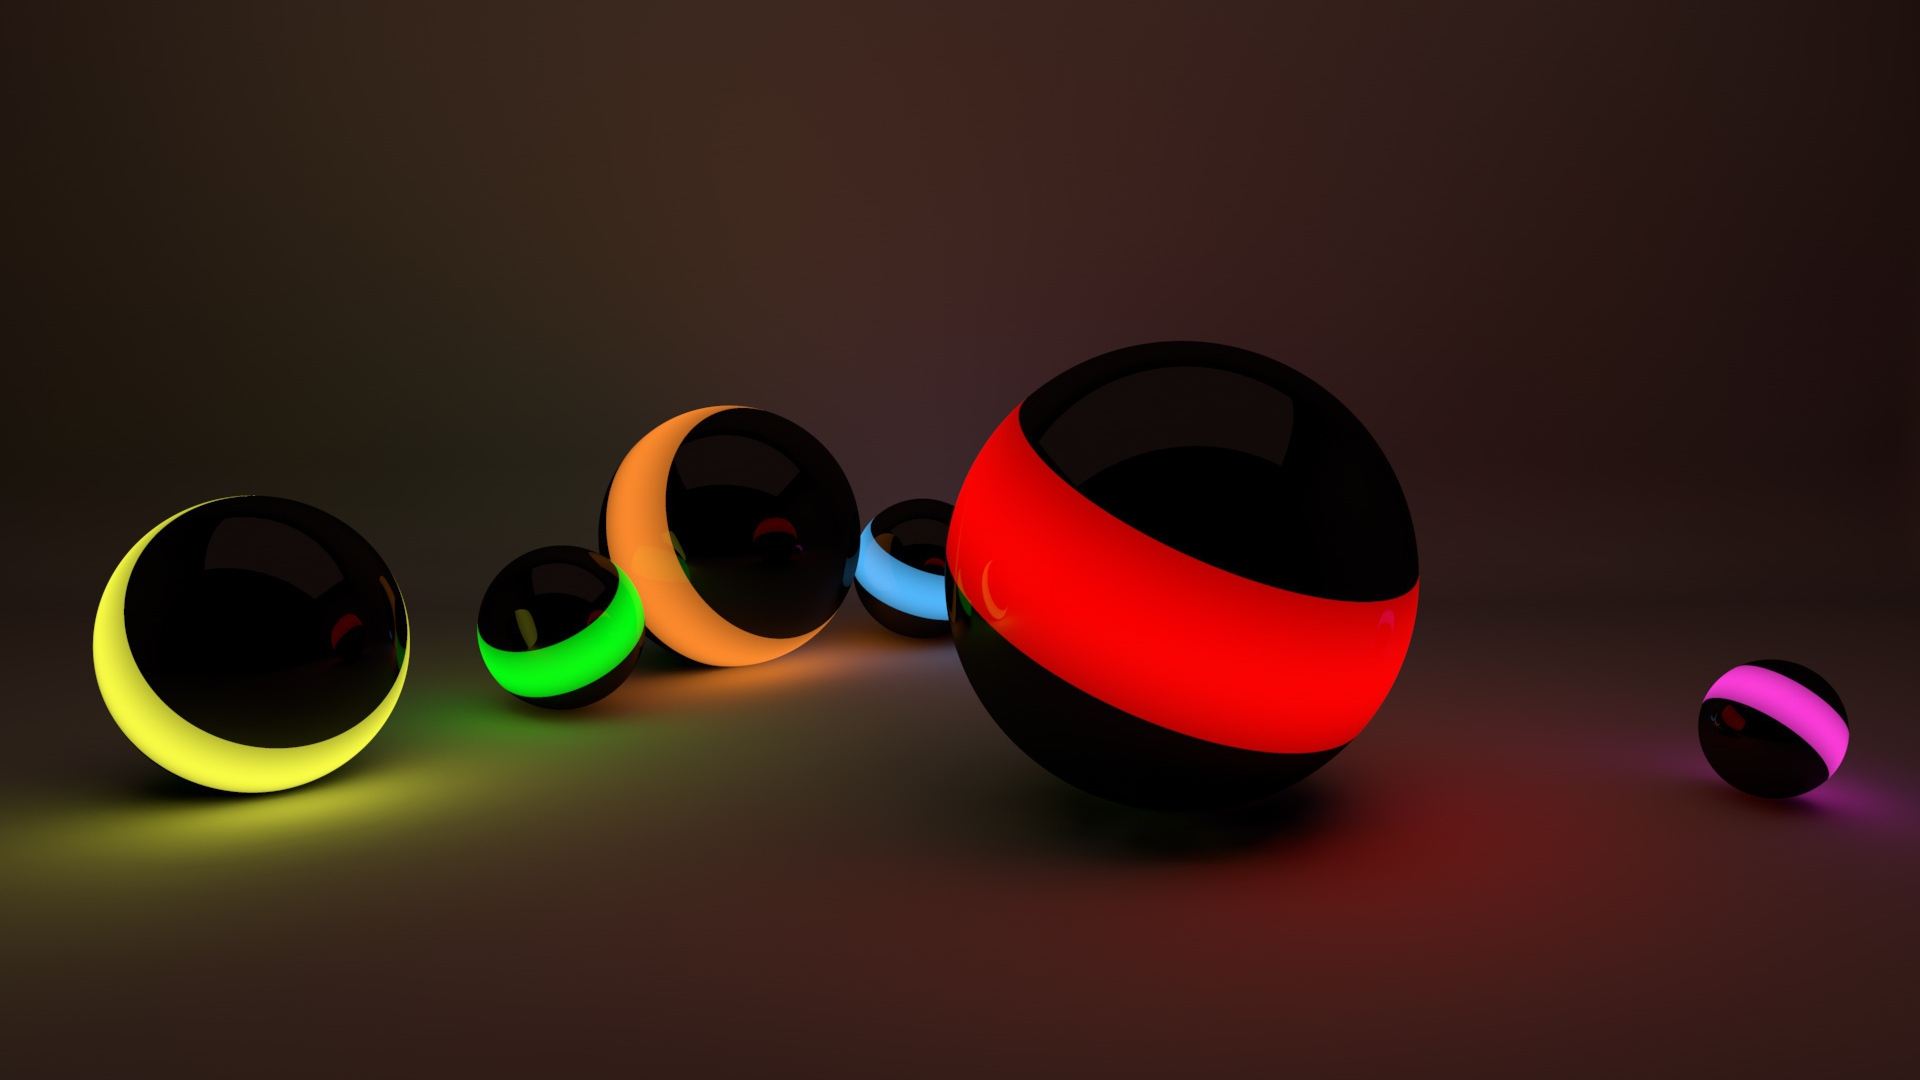 download wallpaper 1920x1080 balls, lines, neon lights full hd